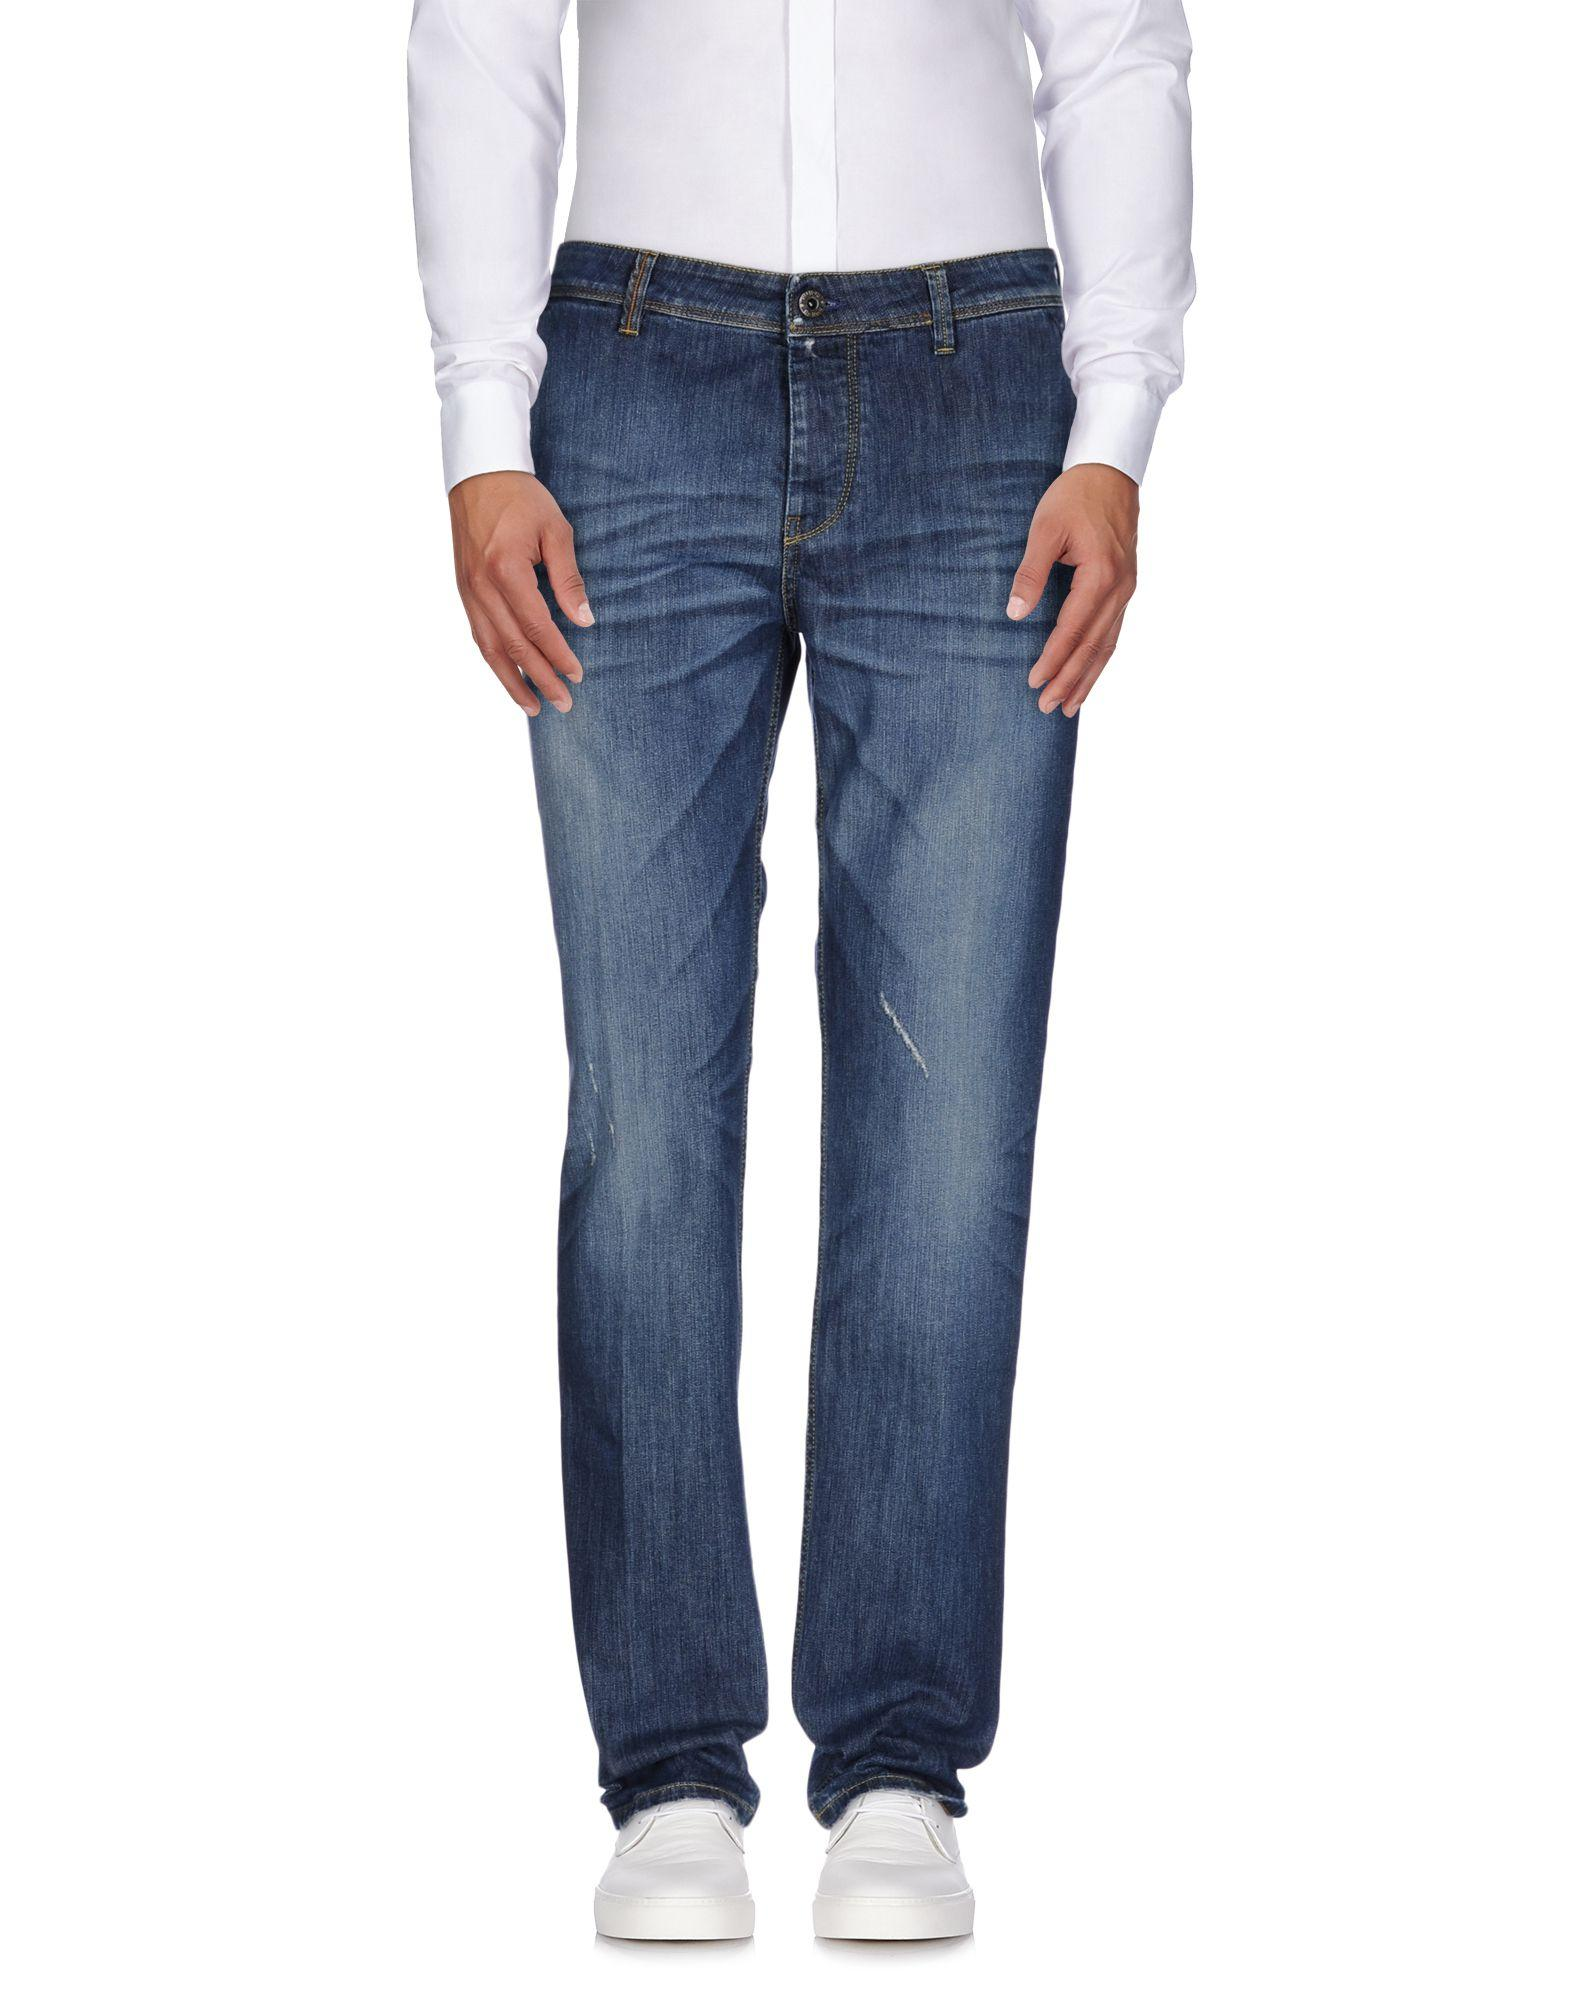 Re-hash Jeans In Blue